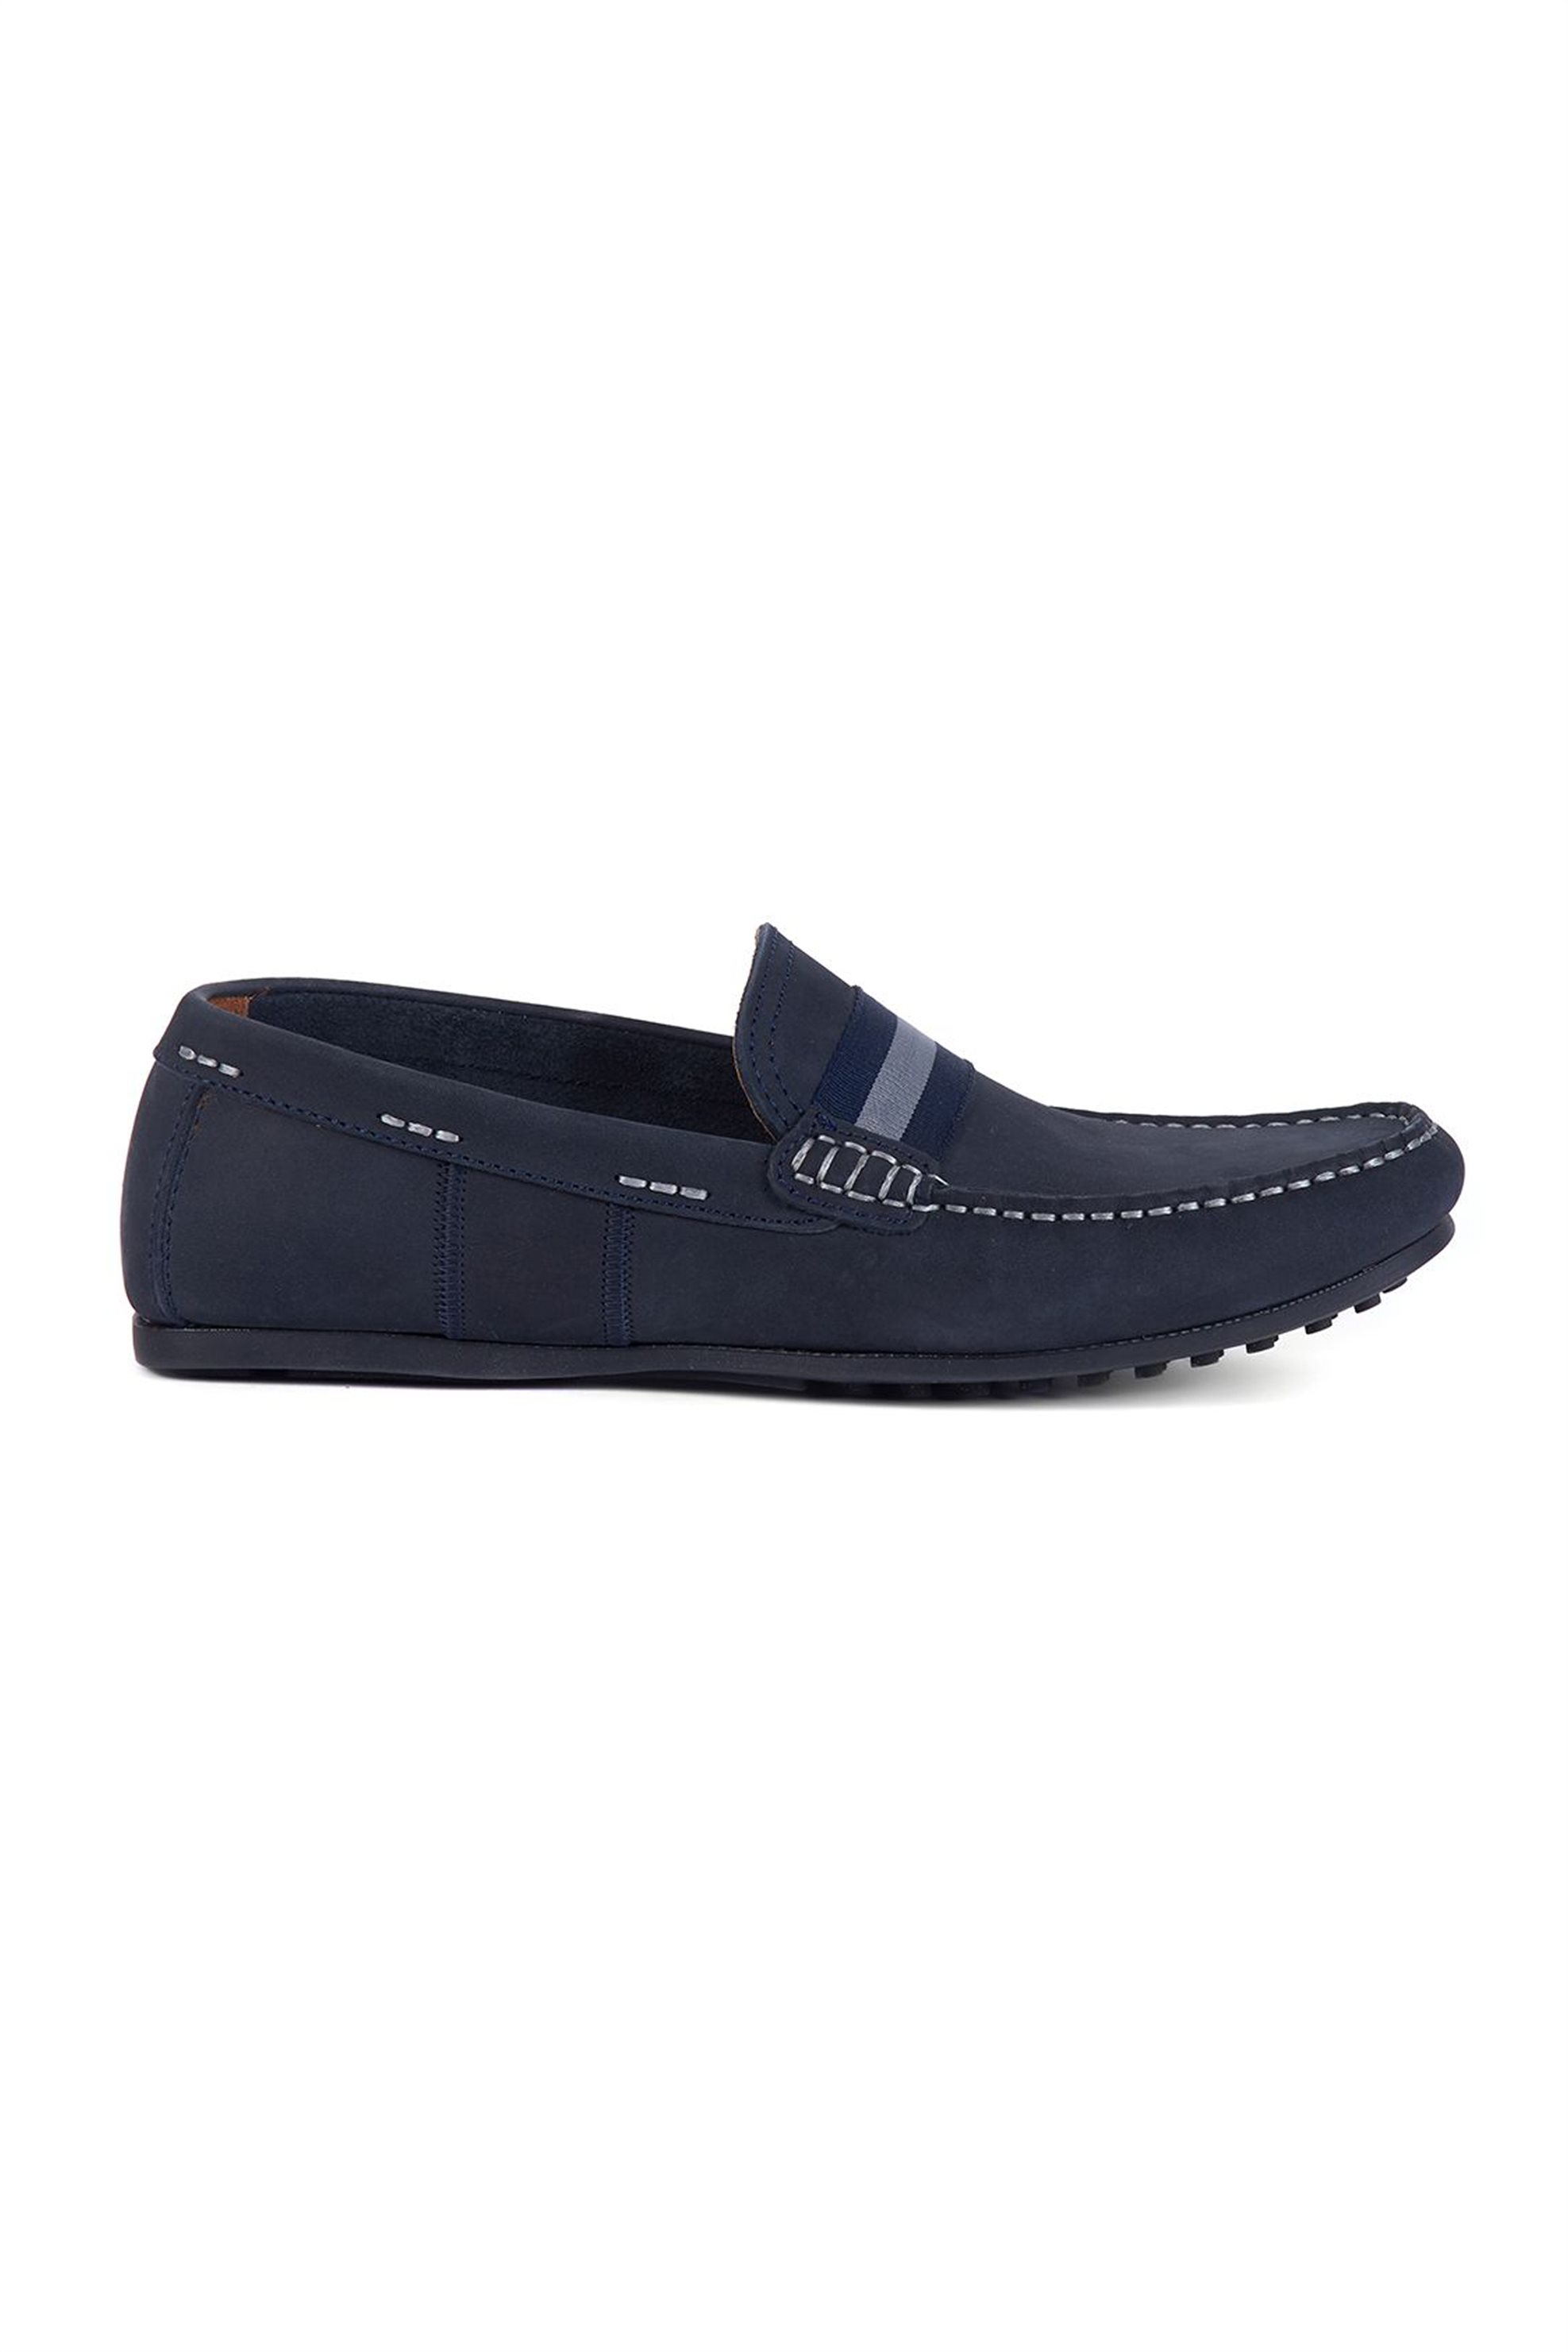 """Barbour ανδρικά suede loafers """"Mansell"""" – MFO0472 – Μπλε Σκούρο"""